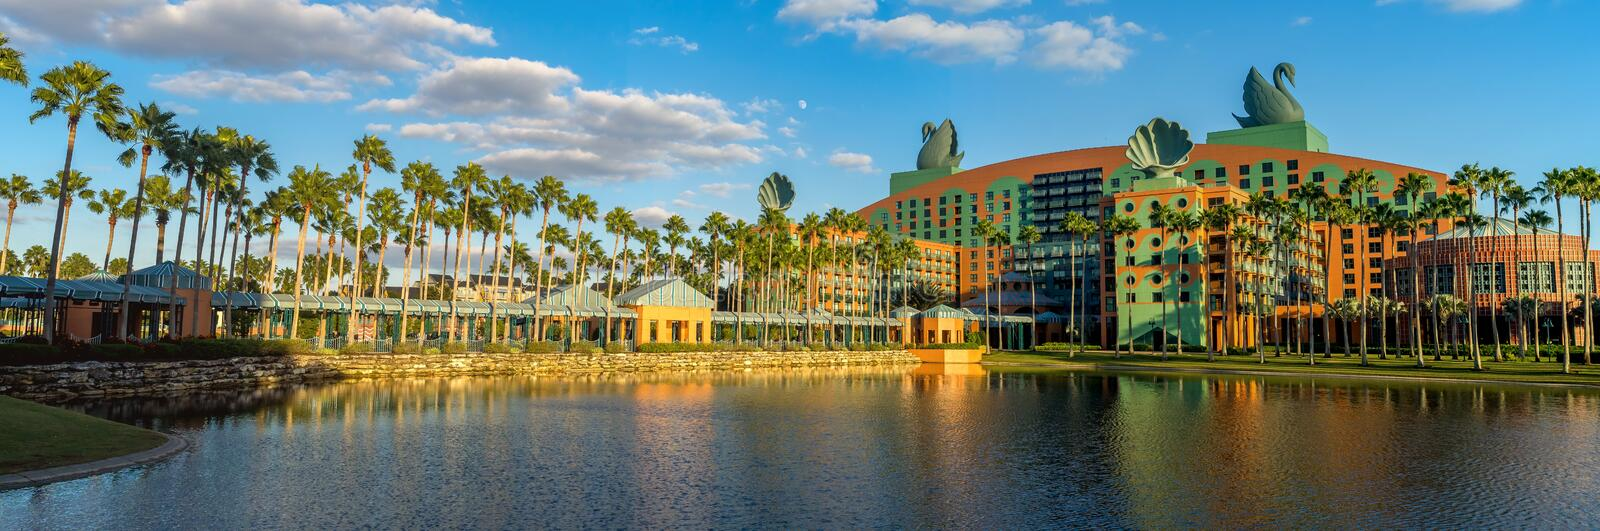 Swan and Dolphin Hotel, Disney World royalty free stock images